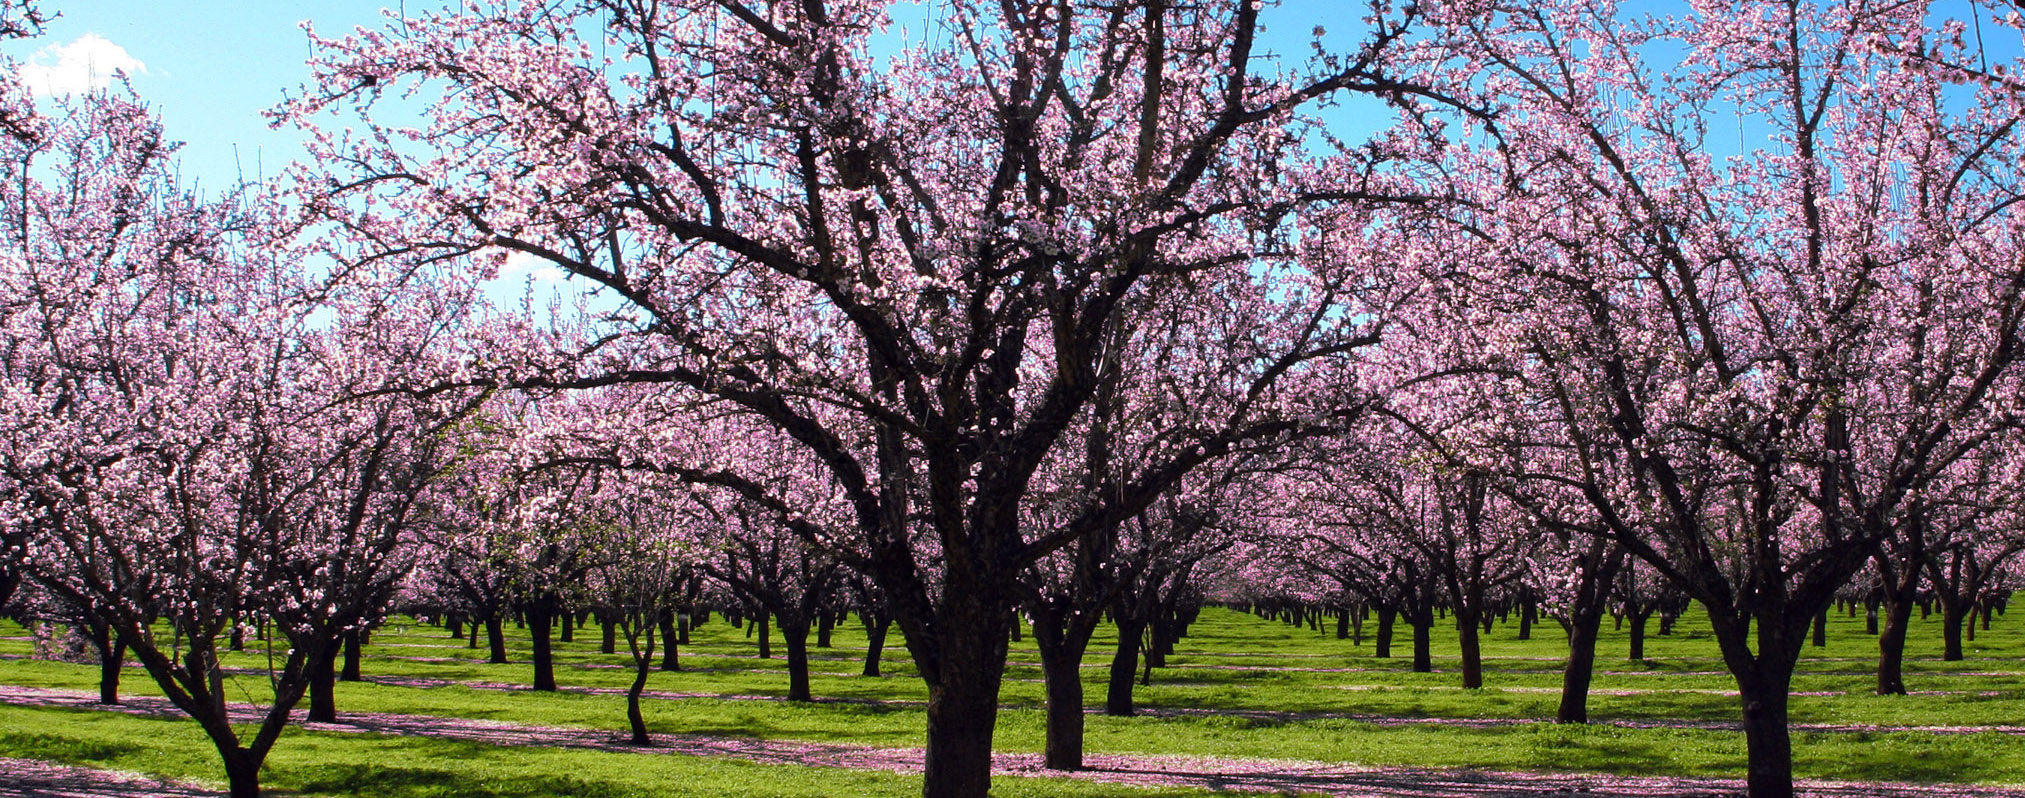 Fruit-bearing Almond Trees.  Source: www.fruit-crops.com